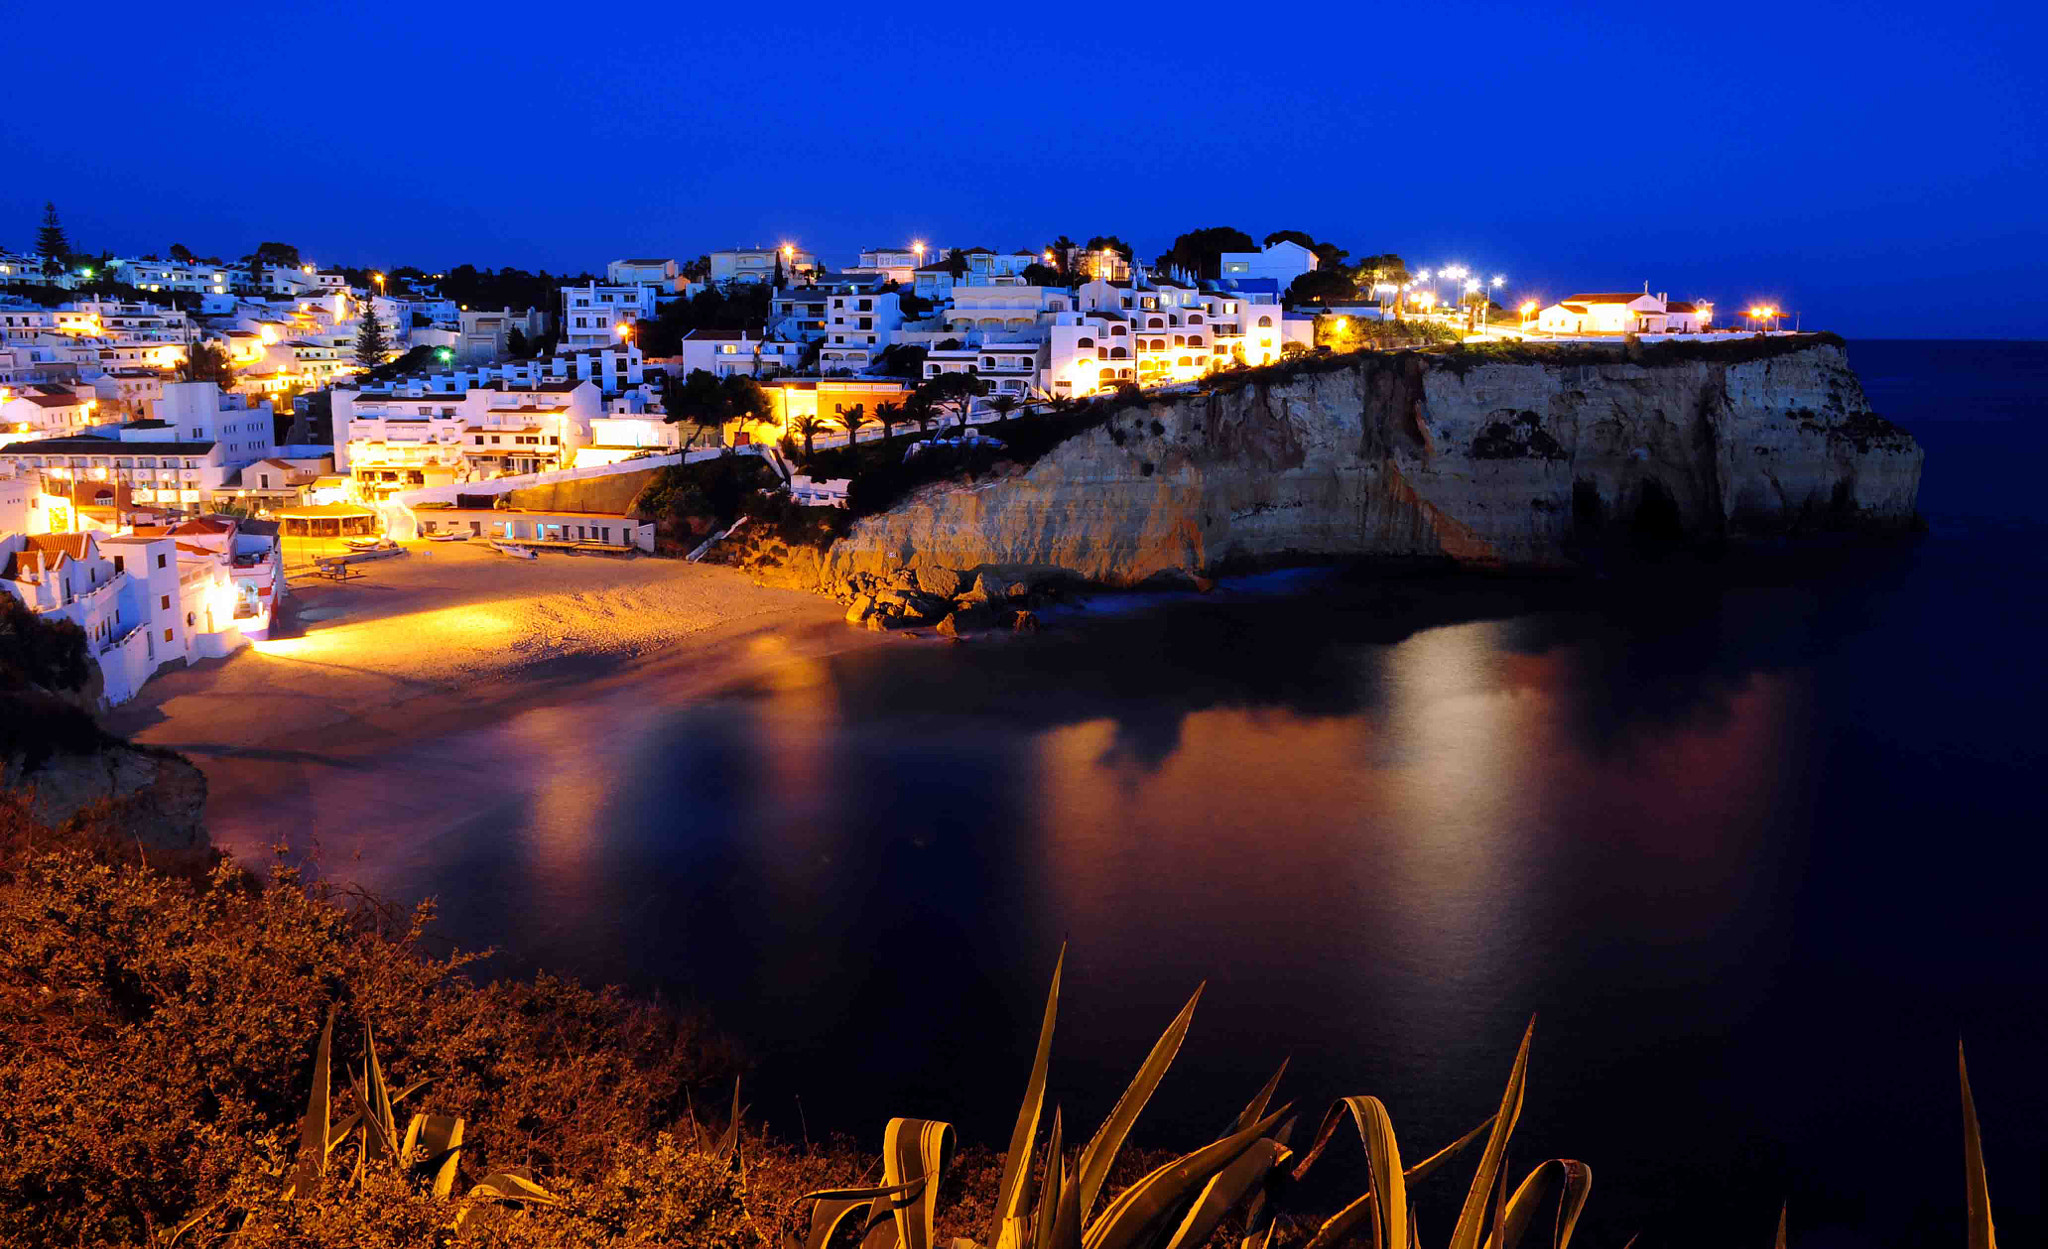 Photograph Carvoeiro by José Eusébio on 500px